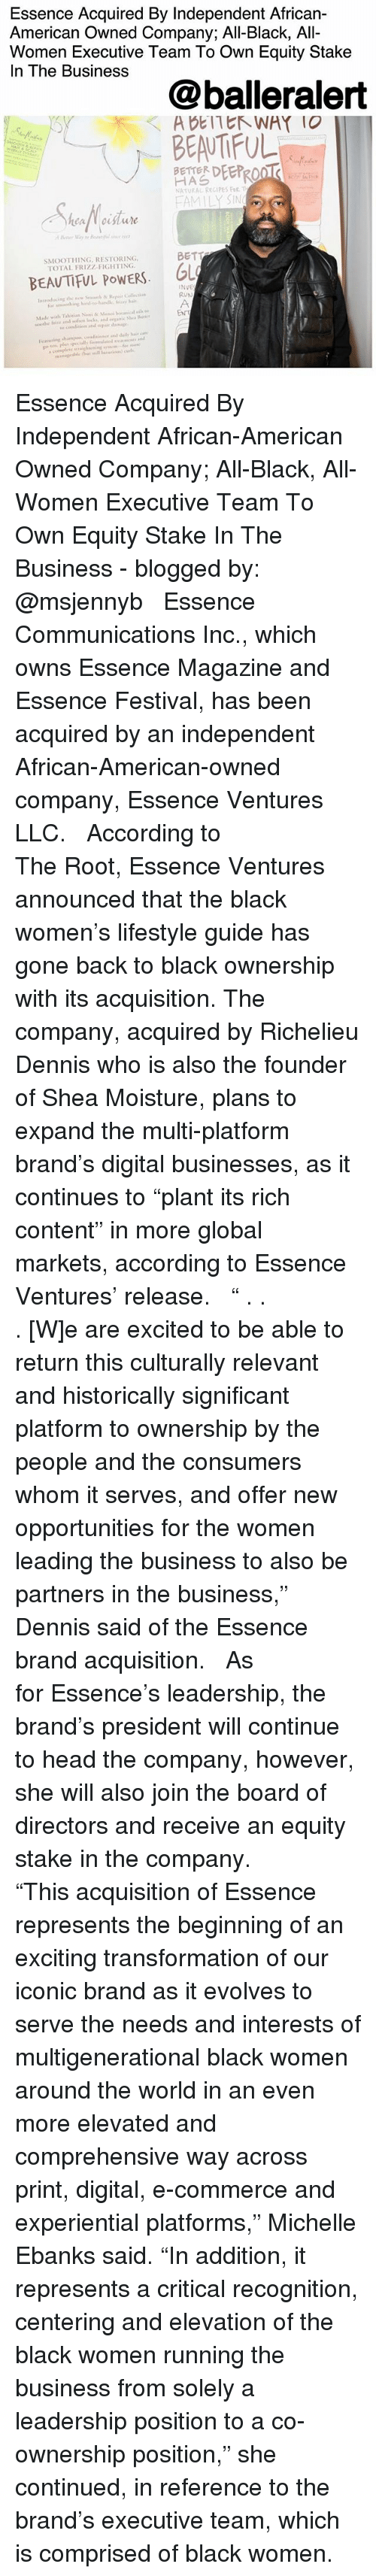 """Beautiful, Family, and Head: Essence Acquired By Independent African-  American Owned Company; All-Black, All-  Women Executive Team To Own Equity Stake  In The Business  @balleralert  BEAUTIFUL  < ADEITヒトWAY 10  BETTER DEERRO  NATURAL RECIPES FoR T  FAMILY SN  SMOOTHING RESTORING  TOTAL FRIZZ-FIGHTING  BEAUTIFUL POWERS OL  INVE  RUN  Made with Tahinian Nomi &Monoi oanicl  ENT  soothe friu And soft㎝ Licks, and neranic Sha l'utter  to condition and spair damage  Feacuring shampoo, d daily hair  po tos, plus specially folatemts n  ayotaplete straightening mem kie niee Essence Acquired By Independent African-American Owned Company; All-Black, All-Women Executive Team To Own Equity Stake In The Business - blogged by: @msjennyb ⠀⠀⠀⠀⠀⠀⠀ ⠀⠀⠀⠀⠀⠀⠀ Essence Communications Inc., which owns Essence Magazine and Essence Festival, has been acquired by an independent African-American-owned company, Essence Ventures LLC. ⠀⠀⠀⠀⠀⠀⠀ ⠀⠀⠀⠀⠀⠀⠀ According to The Root, Essence Ventures announced that the black women's lifestyle guide has gone back to black ownership with its acquisition. The company, acquired by Richelieu Dennis who is also the founder of Shea Moisture, plans to expand the multi-platform brand's digital businesses, as it continues to """"plant its rich content"""" in more global markets, according to Essence Ventures' release. ⠀⠀⠀⠀⠀⠀⠀ ⠀⠀⠀⠀⠀⠀⠀ """" . . . [W]e are excited to be able to return this culturally relevant and historically significant platform to ownership by the people and the consumers whom it serves, and offer new opportunities for the women leading the business to also be partners in the business,"""" Dennis said of the Essence brand acquisition. ⠀⠀⠀⠀⠀⠀⠀ ⠀⠀⠀⠀⠀⠀⠀ As for Essence's leadership, the brand's president will continue to head the company, however, she will also join the board of directors and receive an equity stake in the company. ⠀⠀⠀⠀⠀⠀⠀ ⠀⠀⠀⠀⠀⠀⠀ """"This acquisition of Essence represents the beginning of an exciting transformation of our iconic brand as it evolves to """